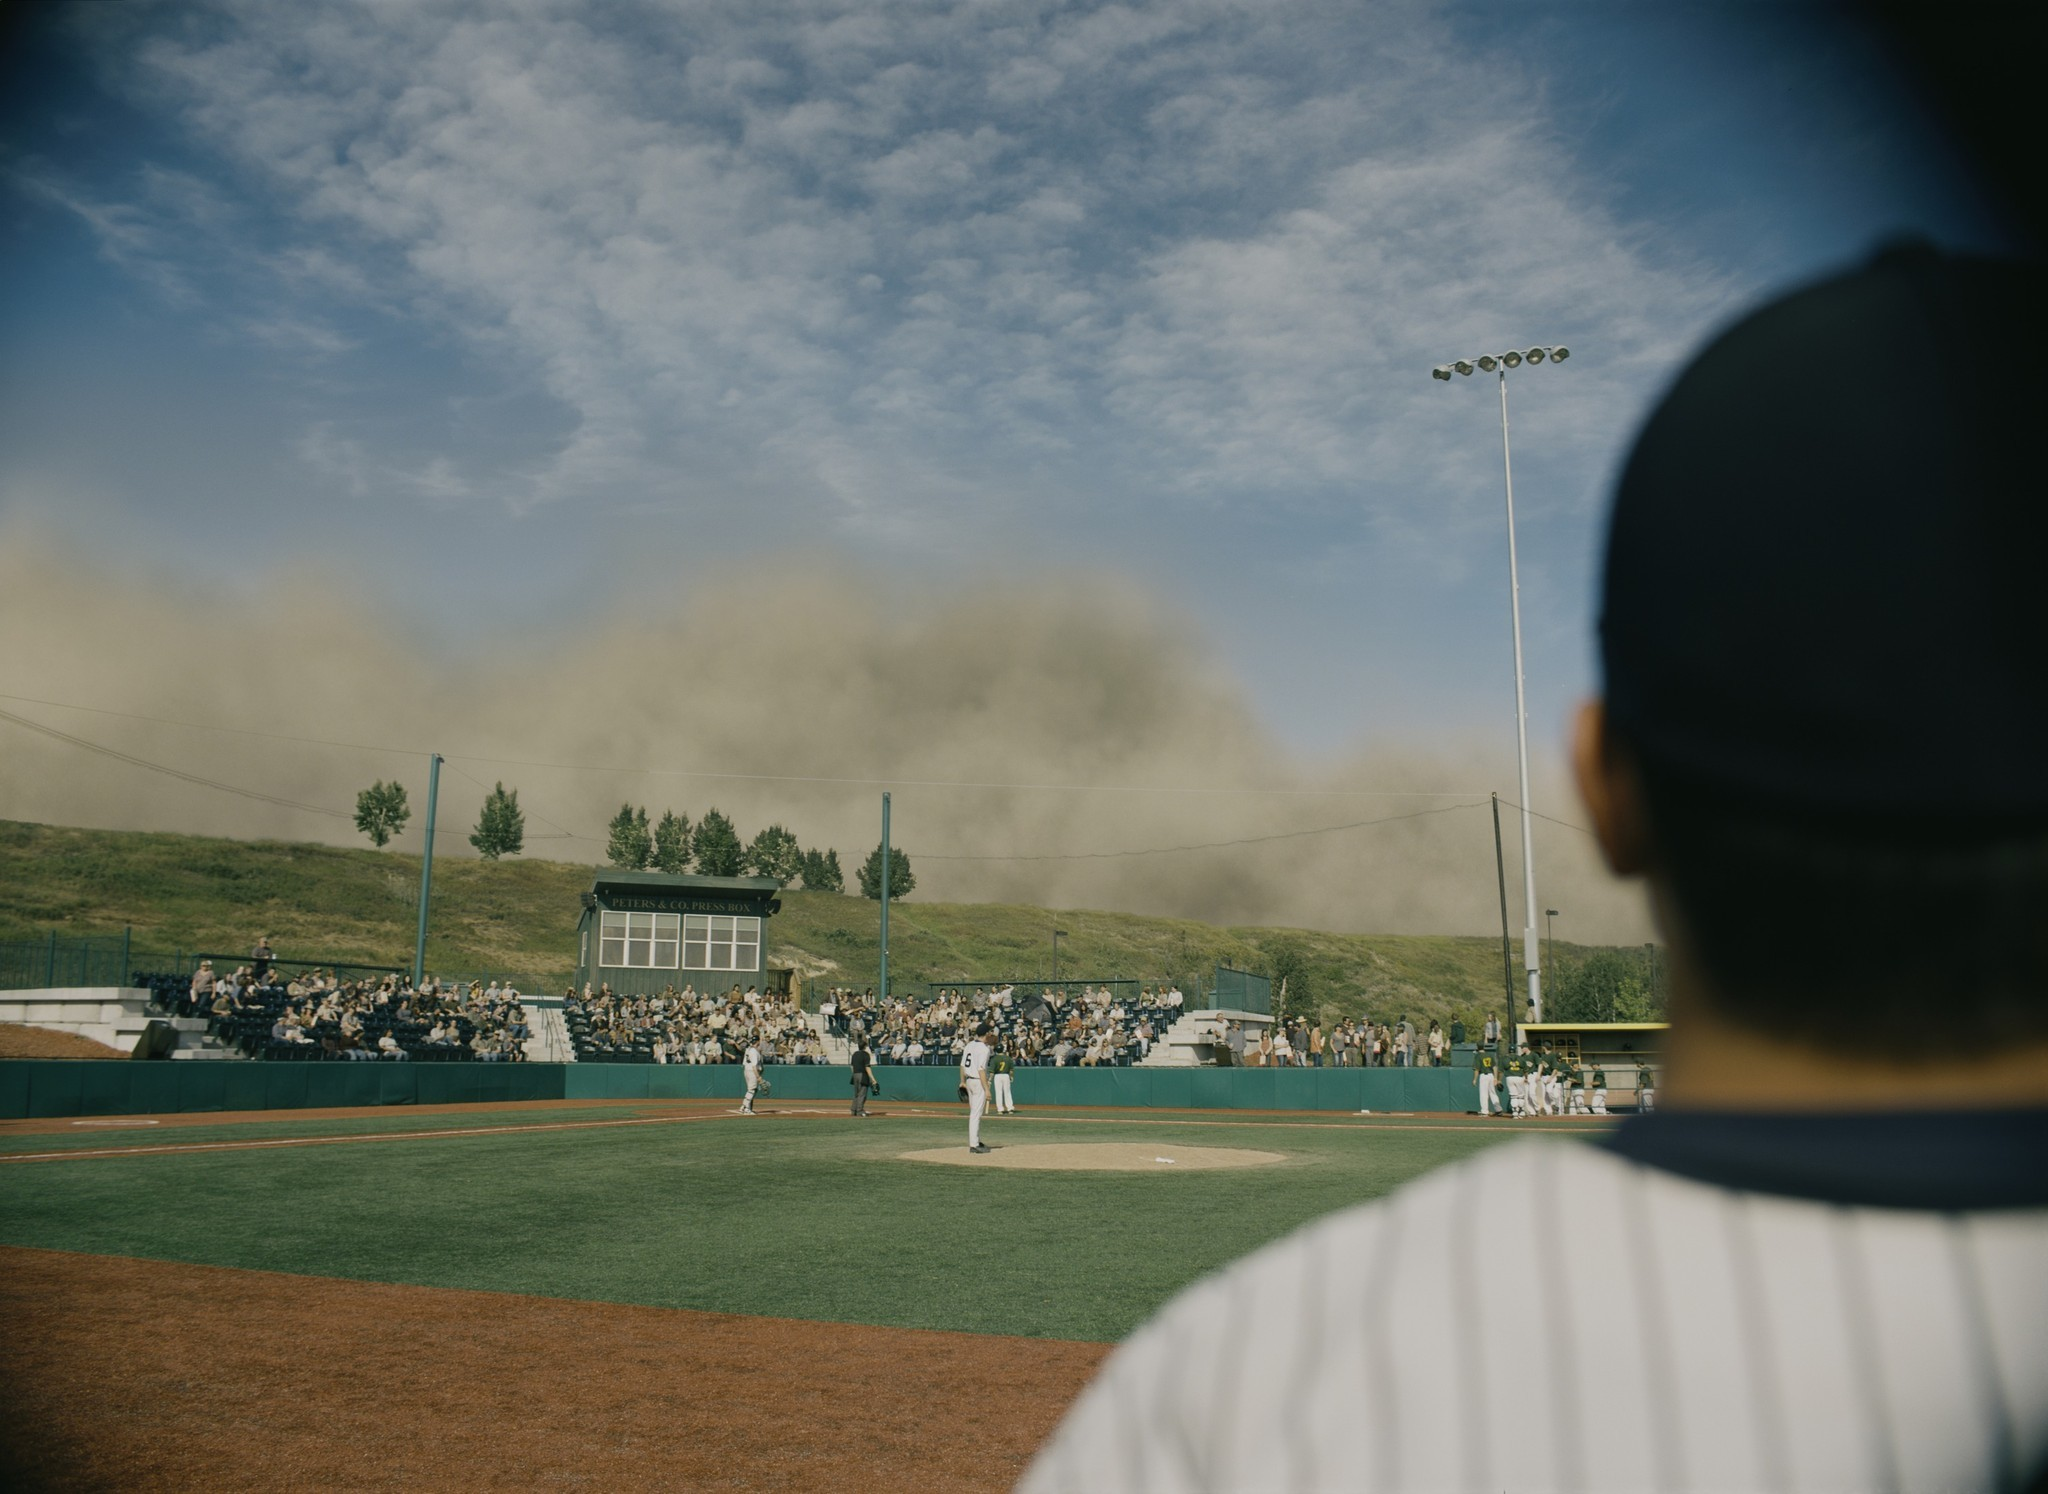 A dust storm at a baseball field in this scene from